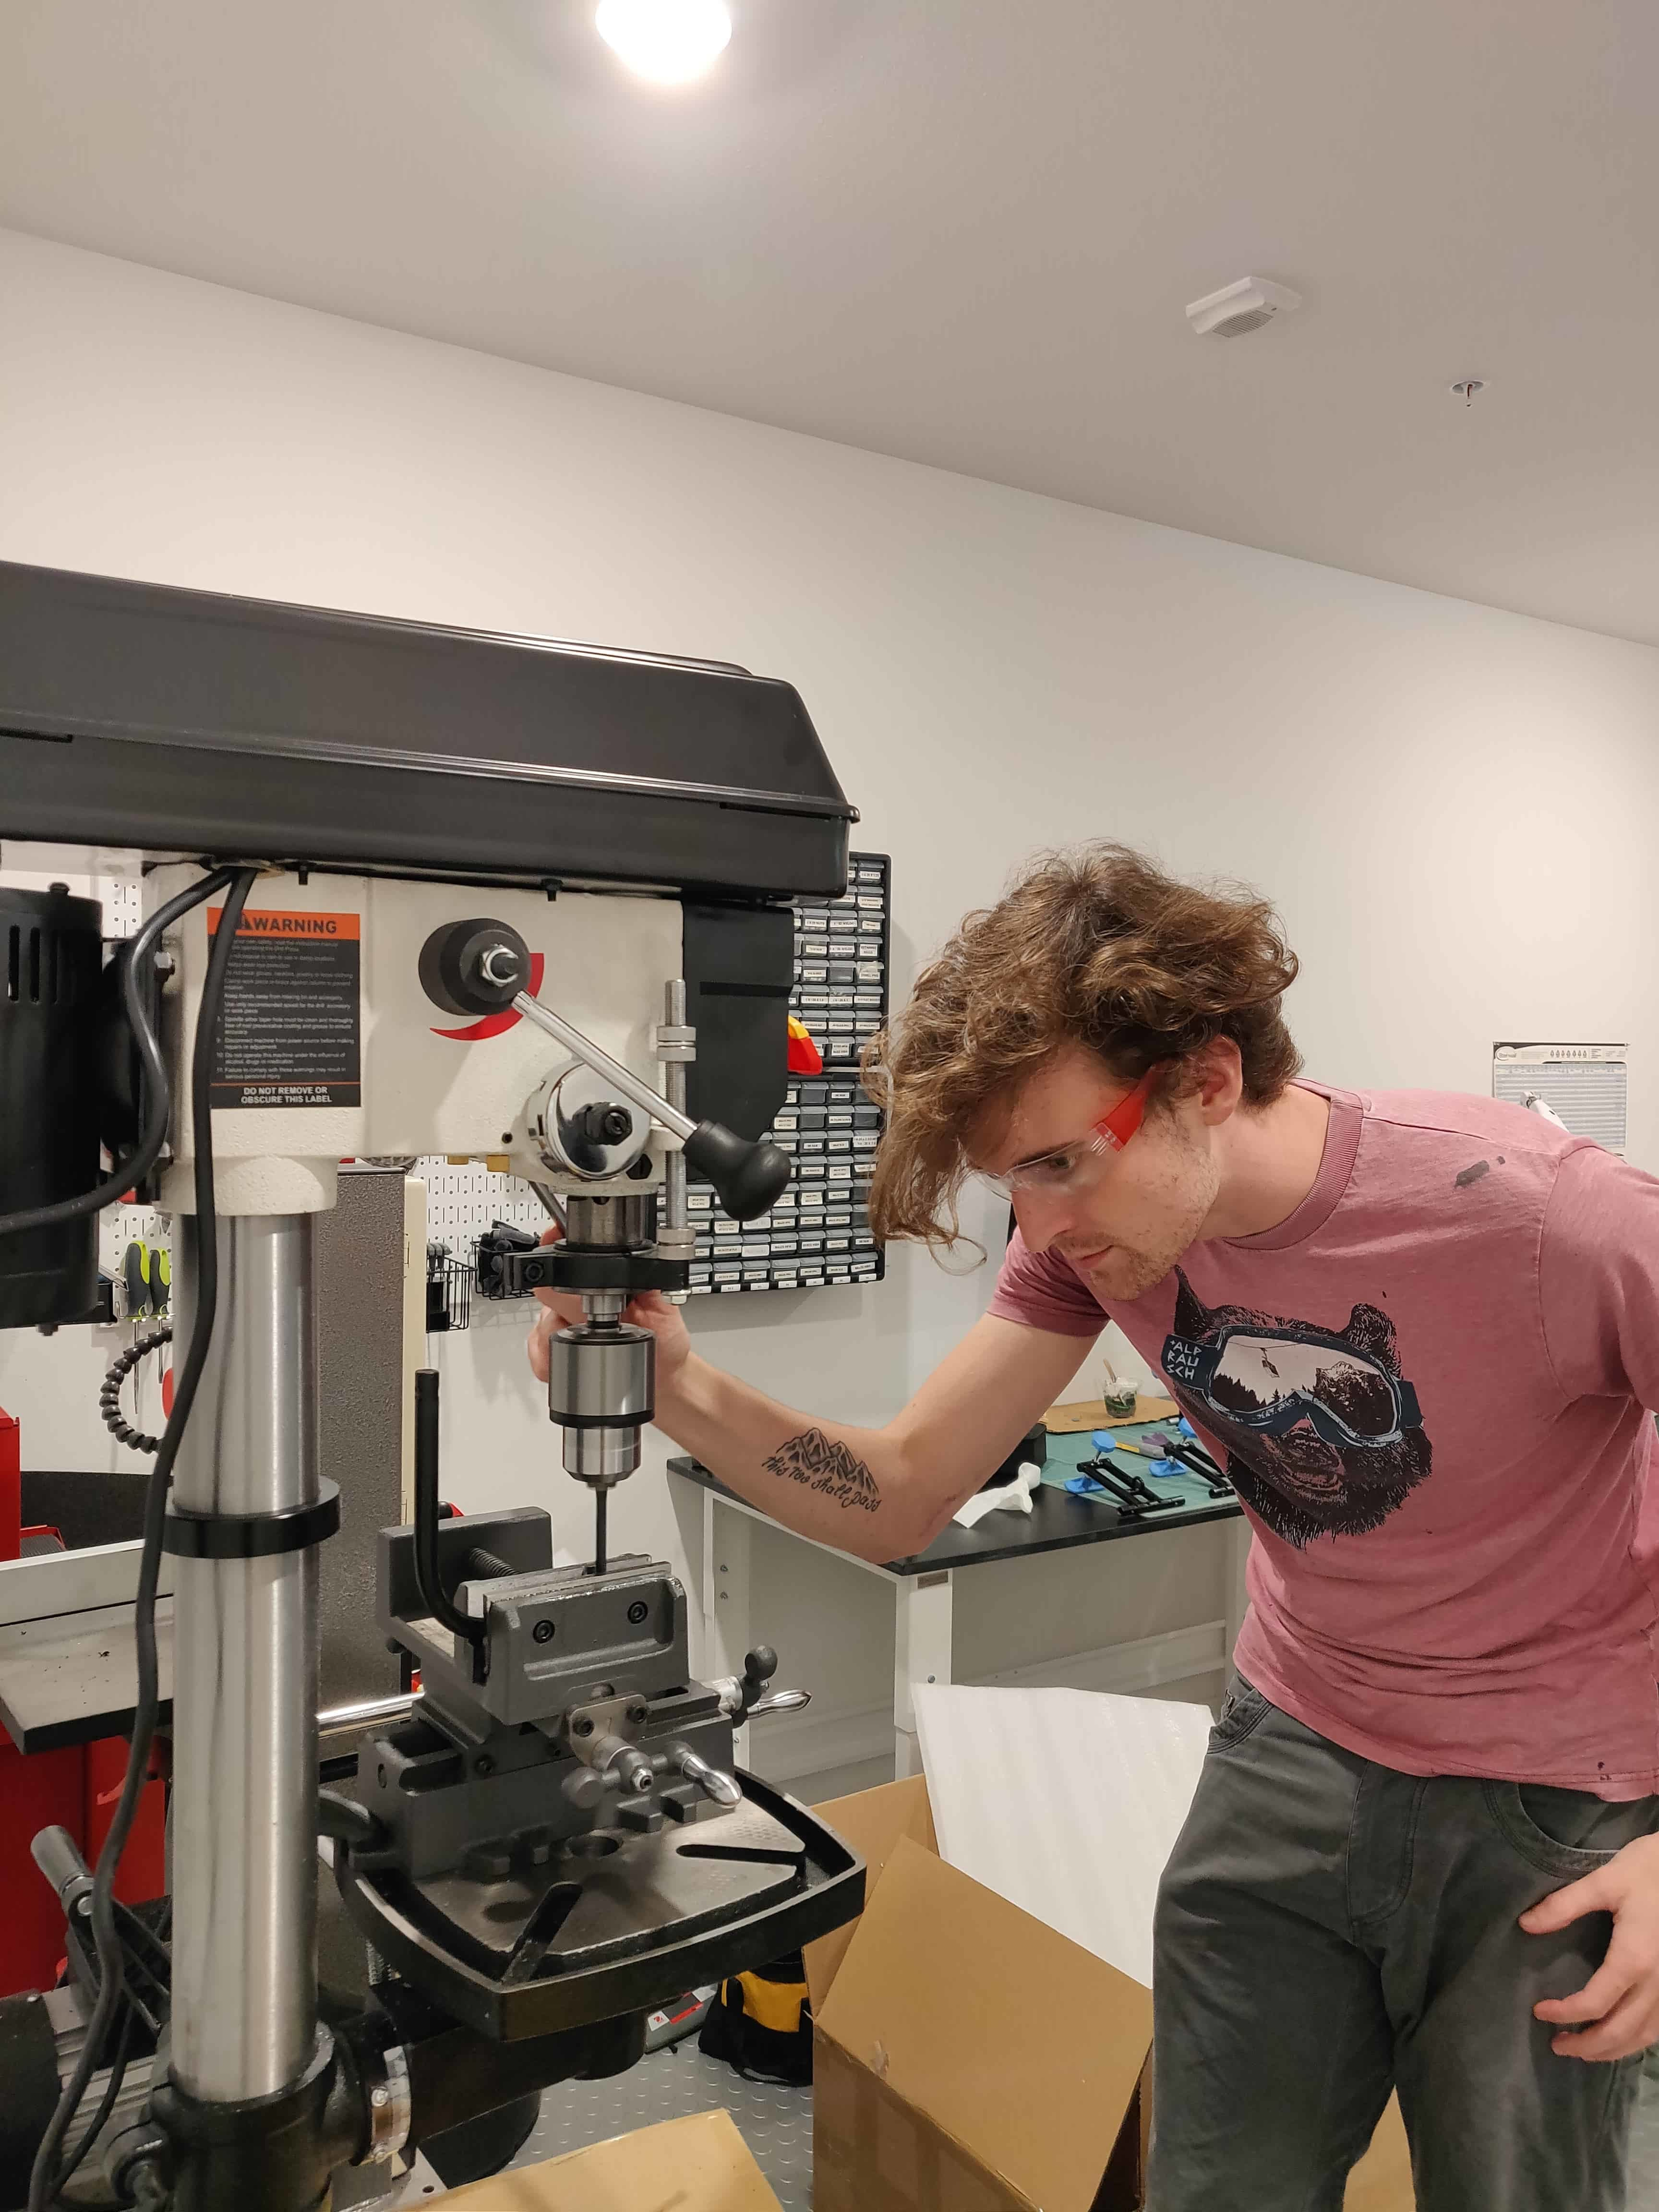 Thompson working with the drill press